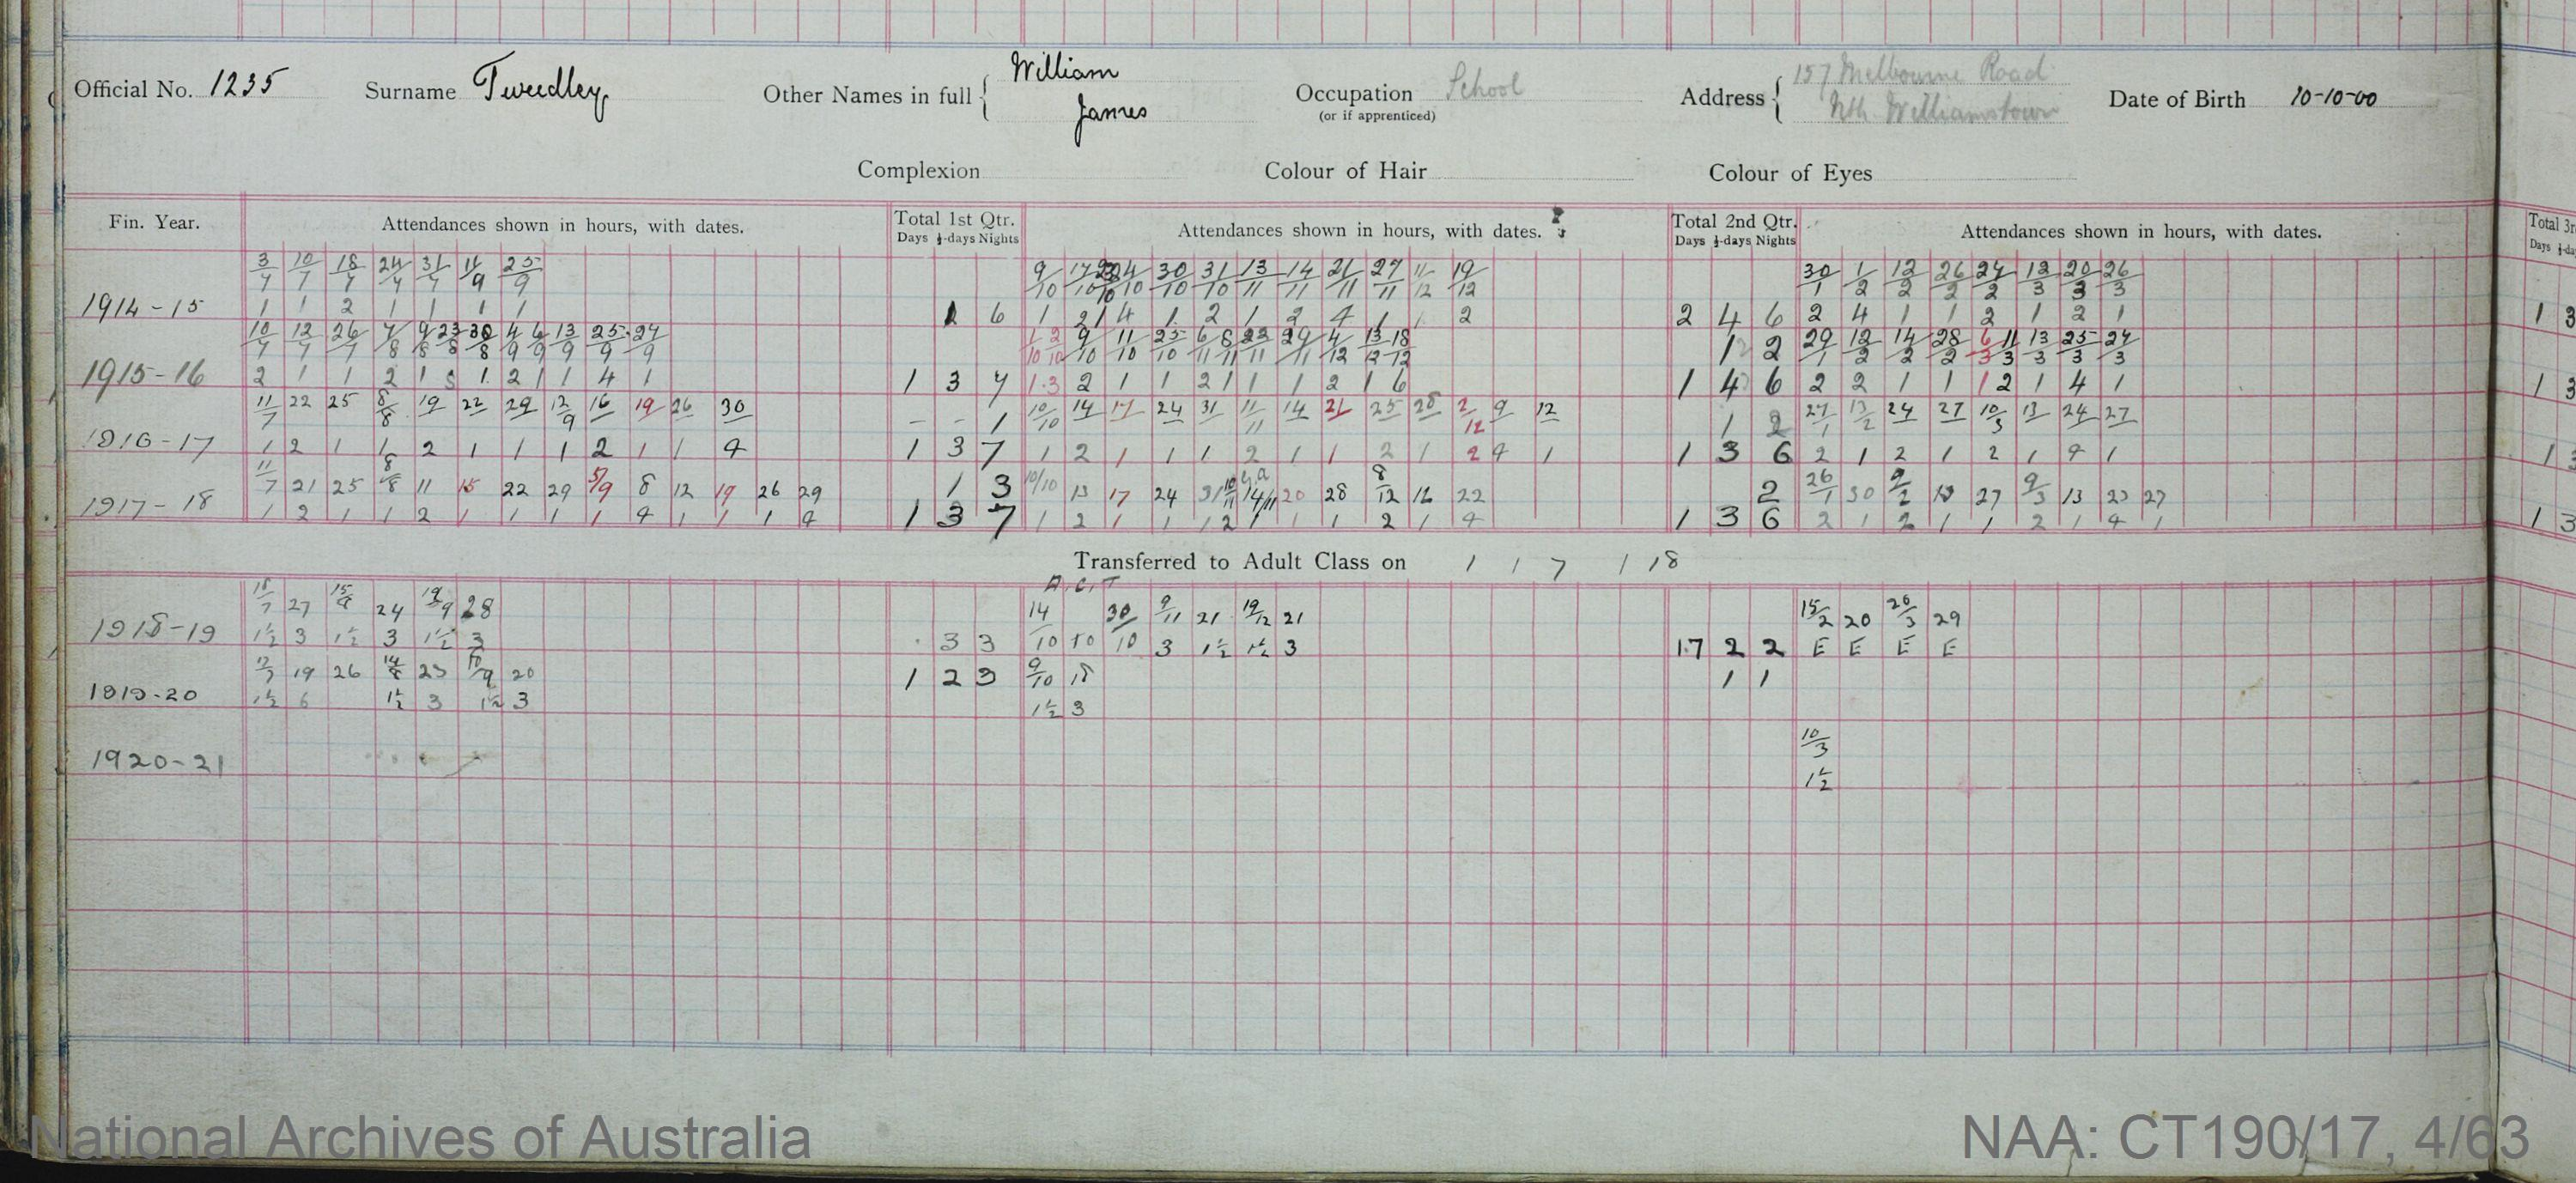 SURNAME - TWEEDLEY;  GIVEN NAME(S) - William James;  OFFICIAL NUMBER - 1235;  DATE OF BIRTH - 10 October 1900;  PLACE OF BIRTH - [Unknown];  NEXT OF KIN - [Unknown] ;  SERVICE/STATION - Williamstown Victoria;  REGISTRATION DATE - 2 March 1914